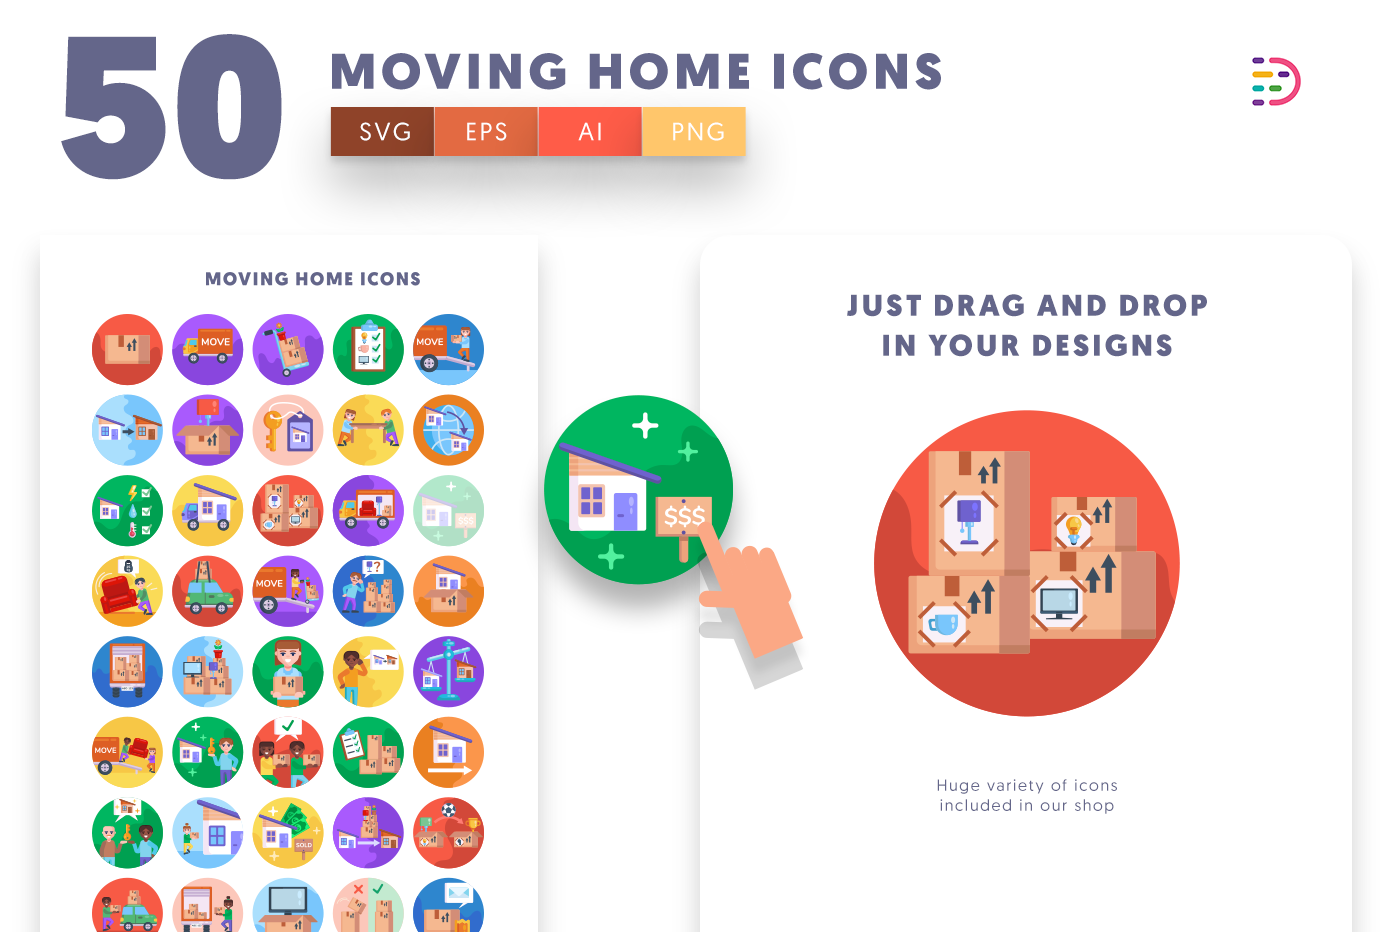 Drag and drop vector 50 Moving Home Icons